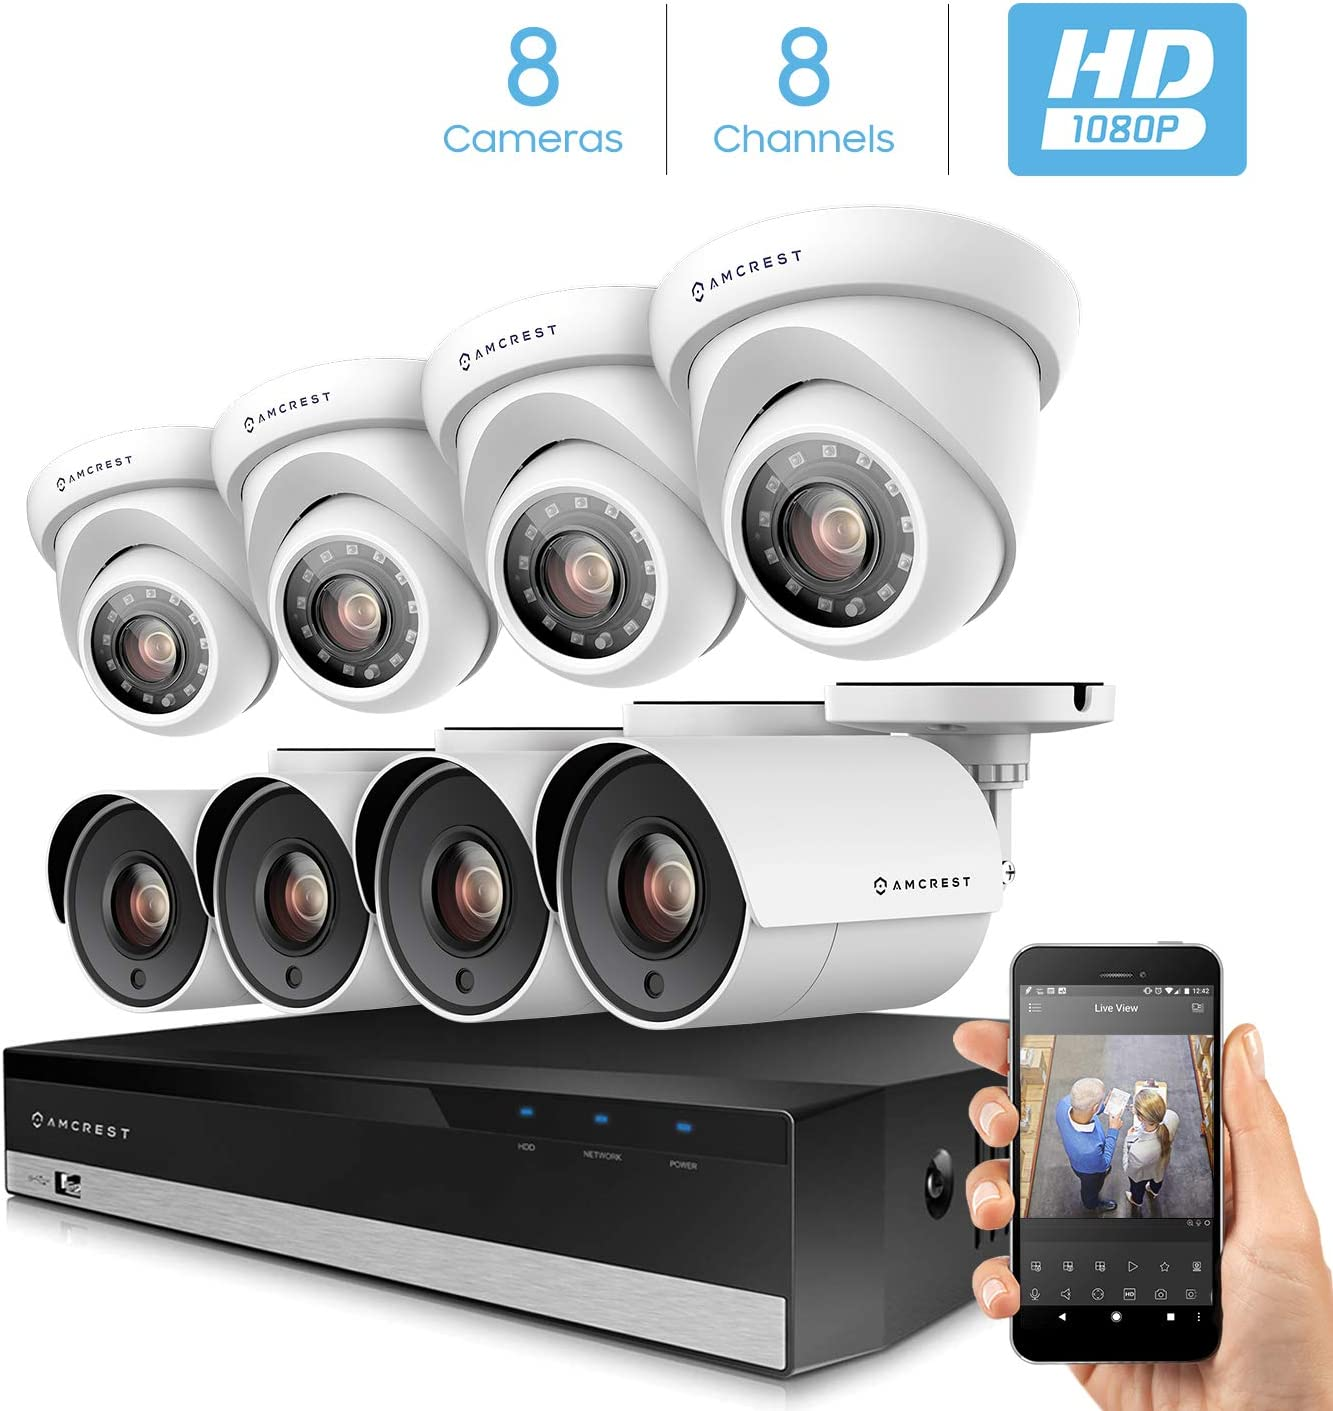 Amcrest ProHD 1080p 8CH Home Security Camera System with 8 x 2-Megapixel Weatherproof Outdoor Security Cameras, 2MP DVR w Pre-Installed 1TB Hard Drive, Night Vision, BNC Cables AMDV20M8-4B4D-W